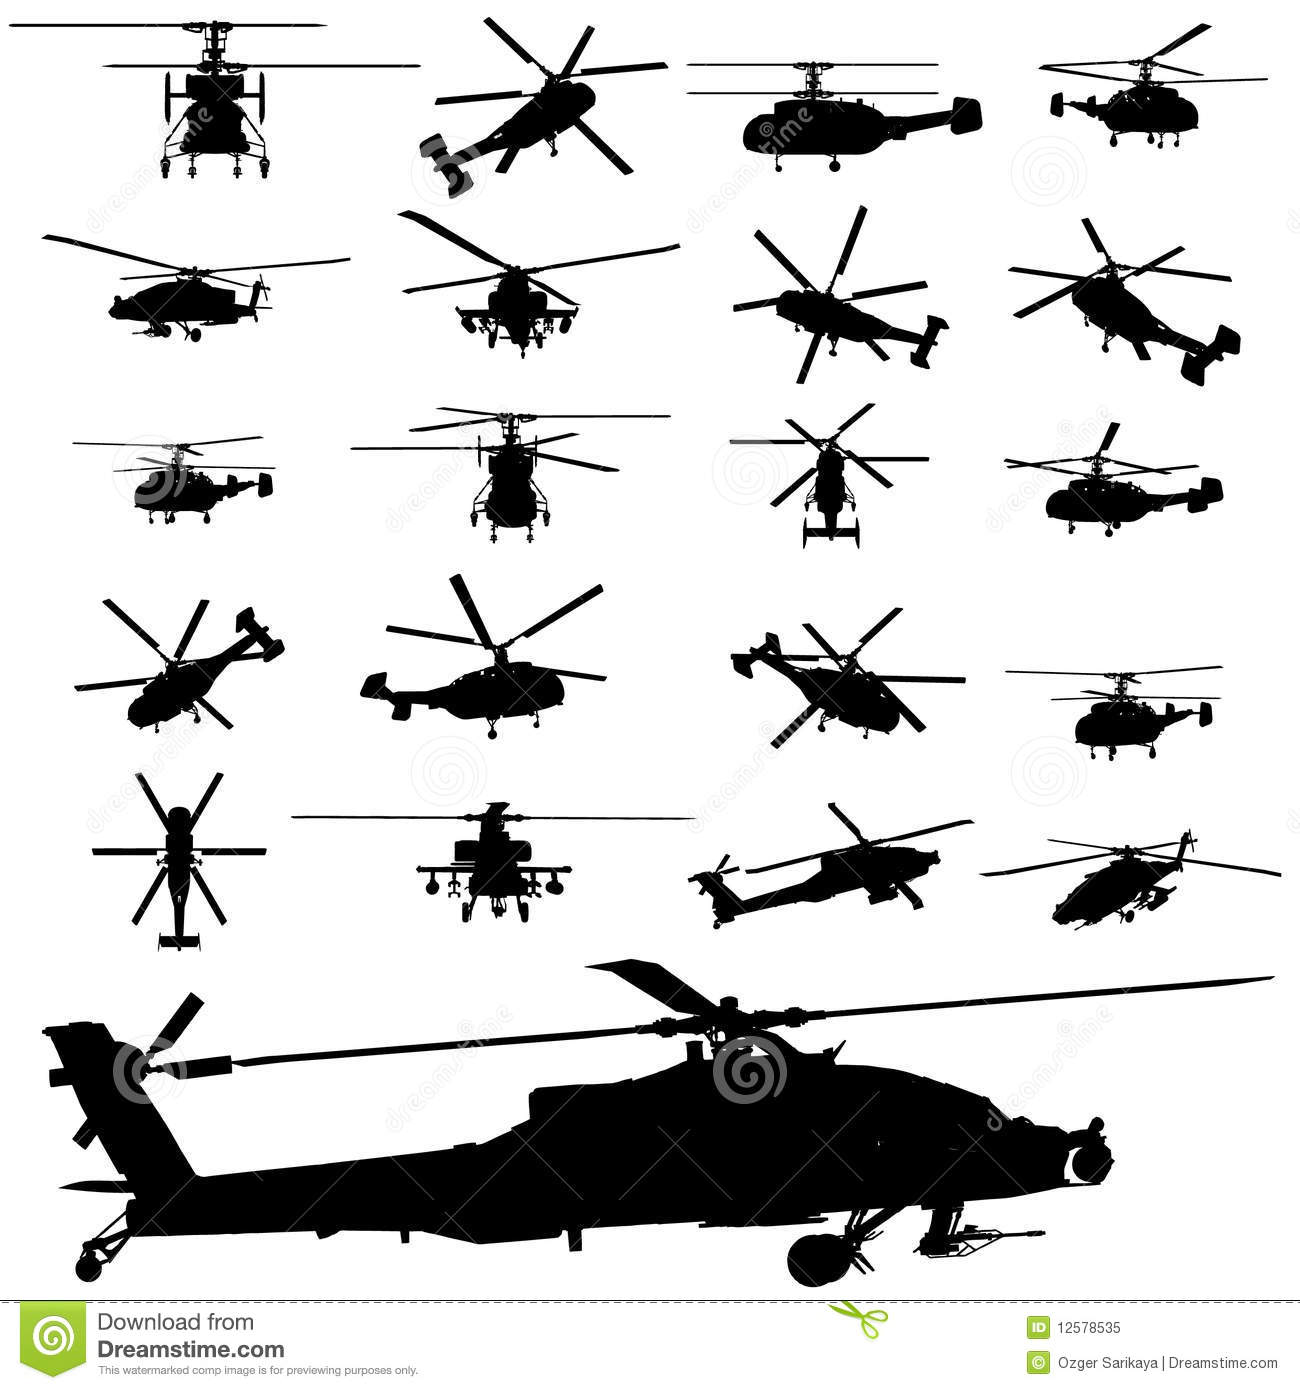 Similiar Apache Helicopter Silhouette Clip Art Keywords